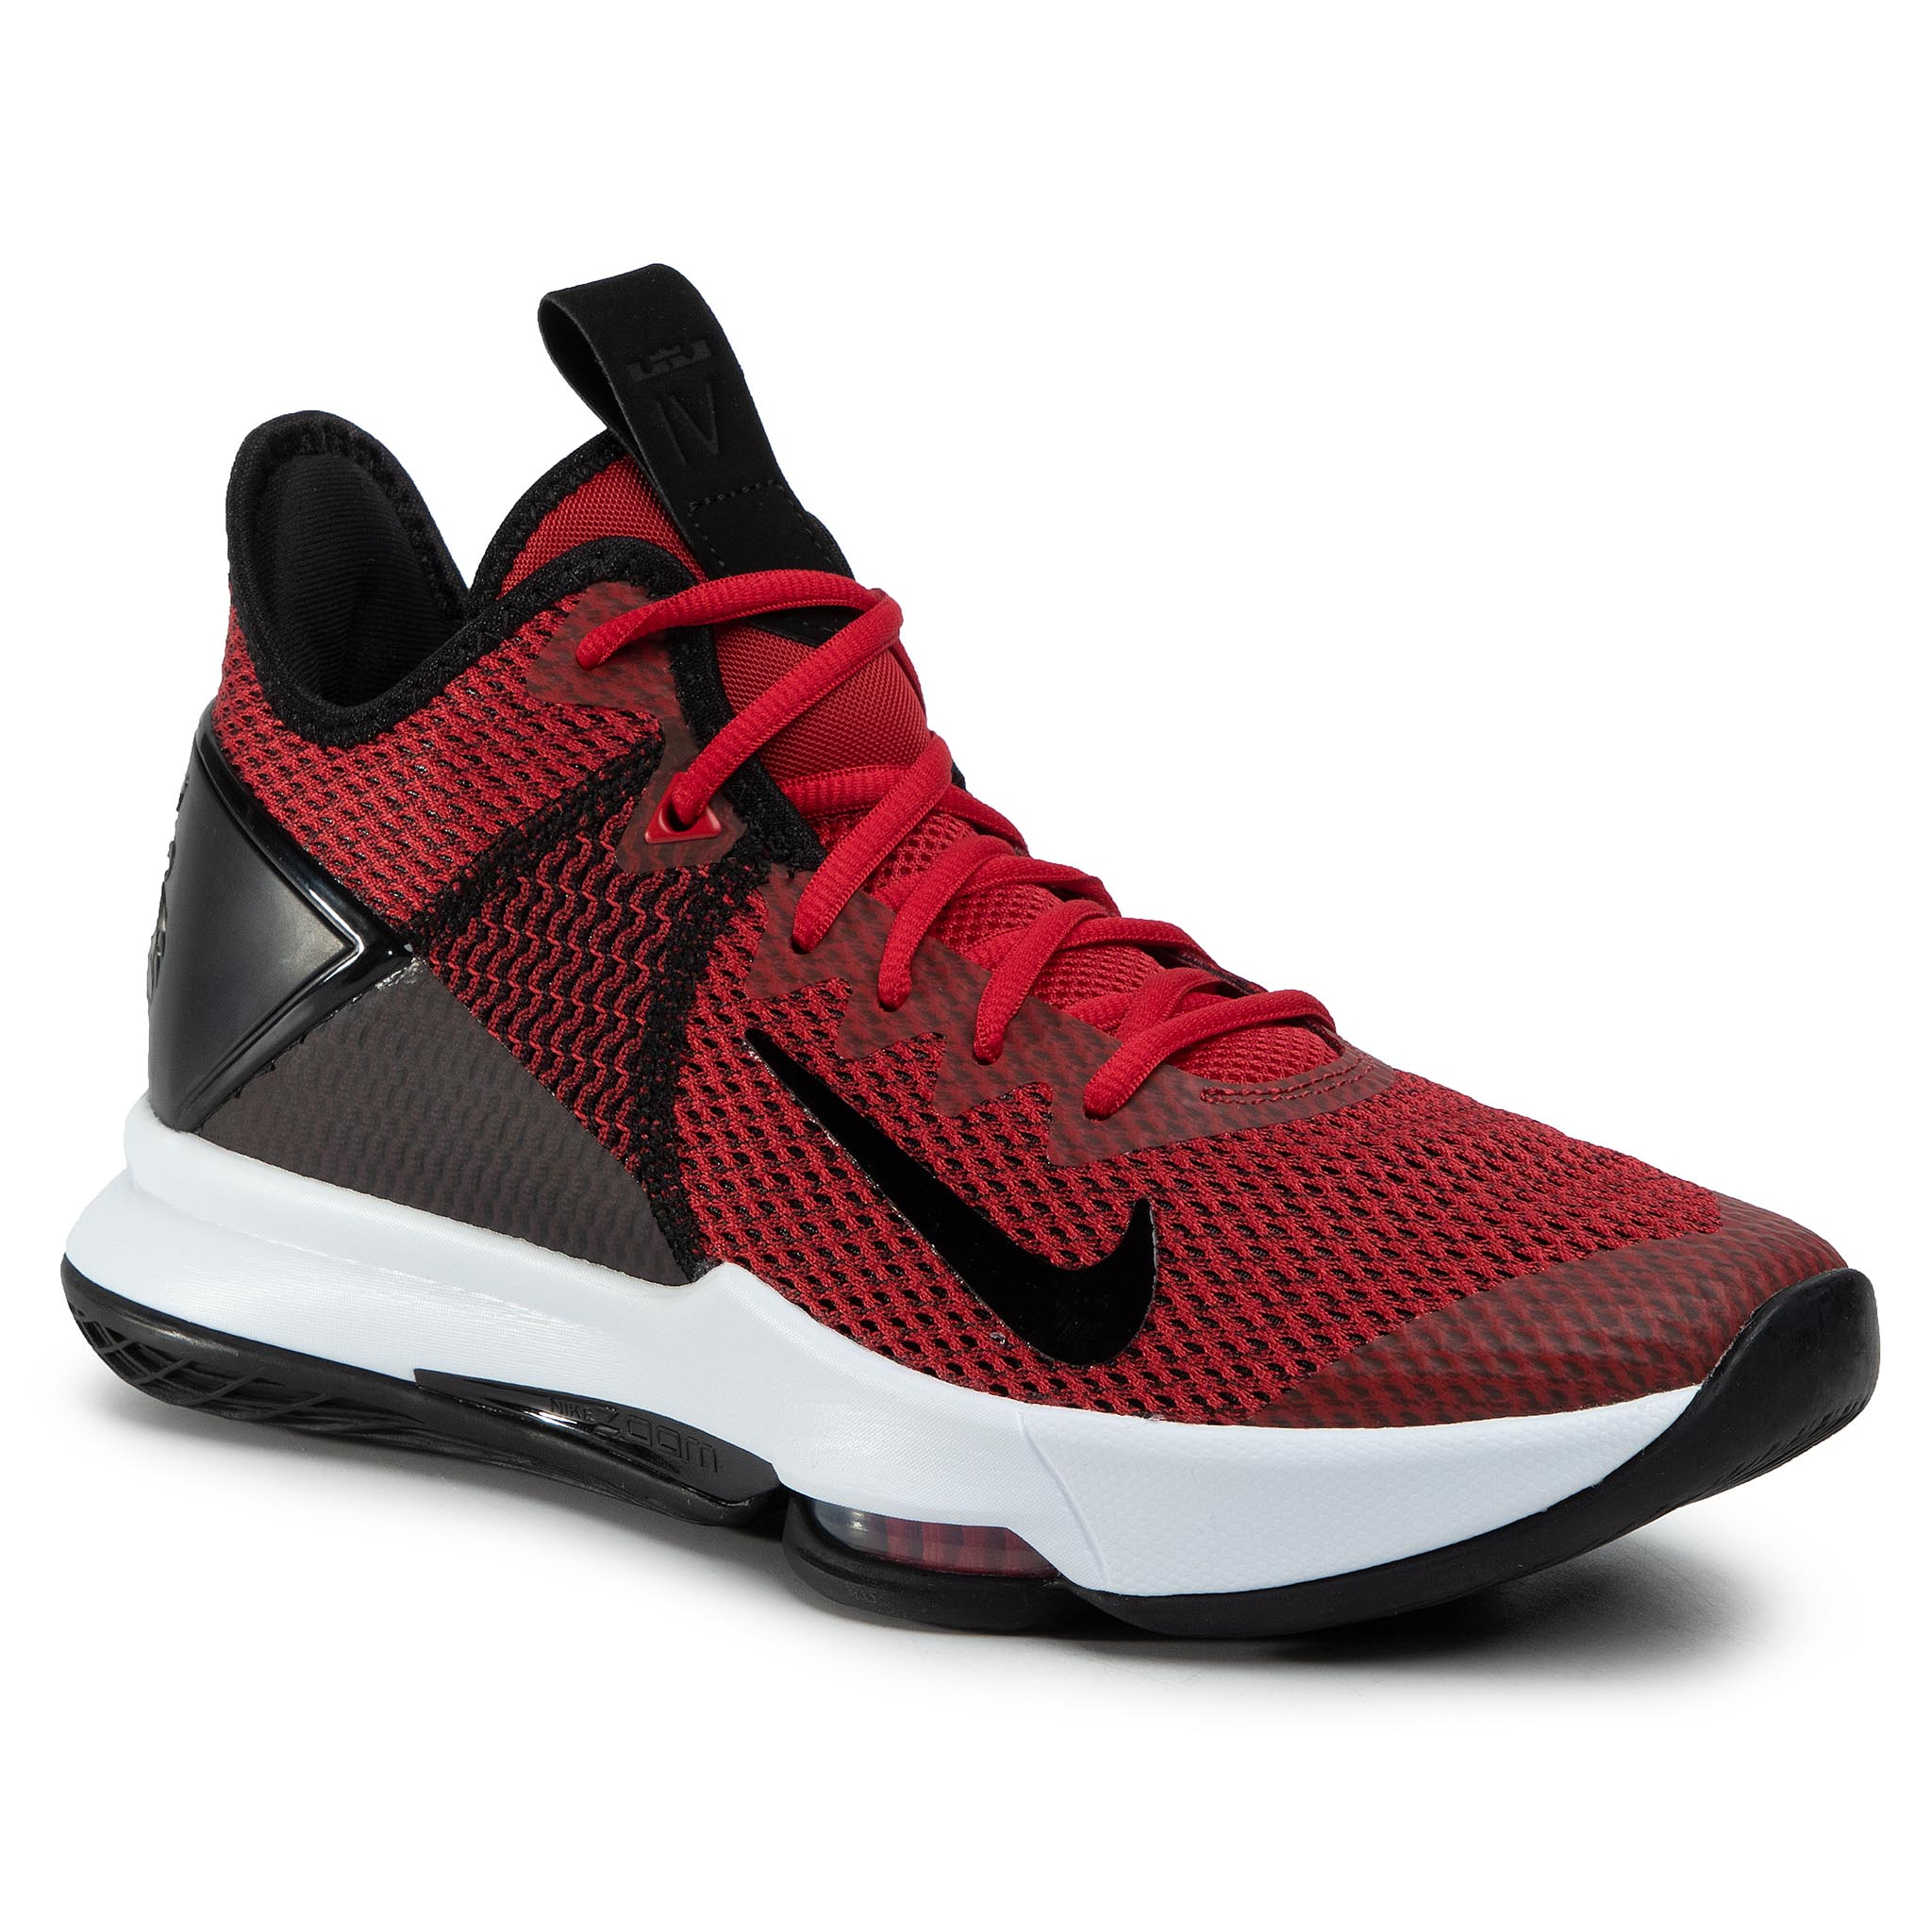 Boty NIKE - Lebron Witness IV BV7427 002 Black/Gym Red/White